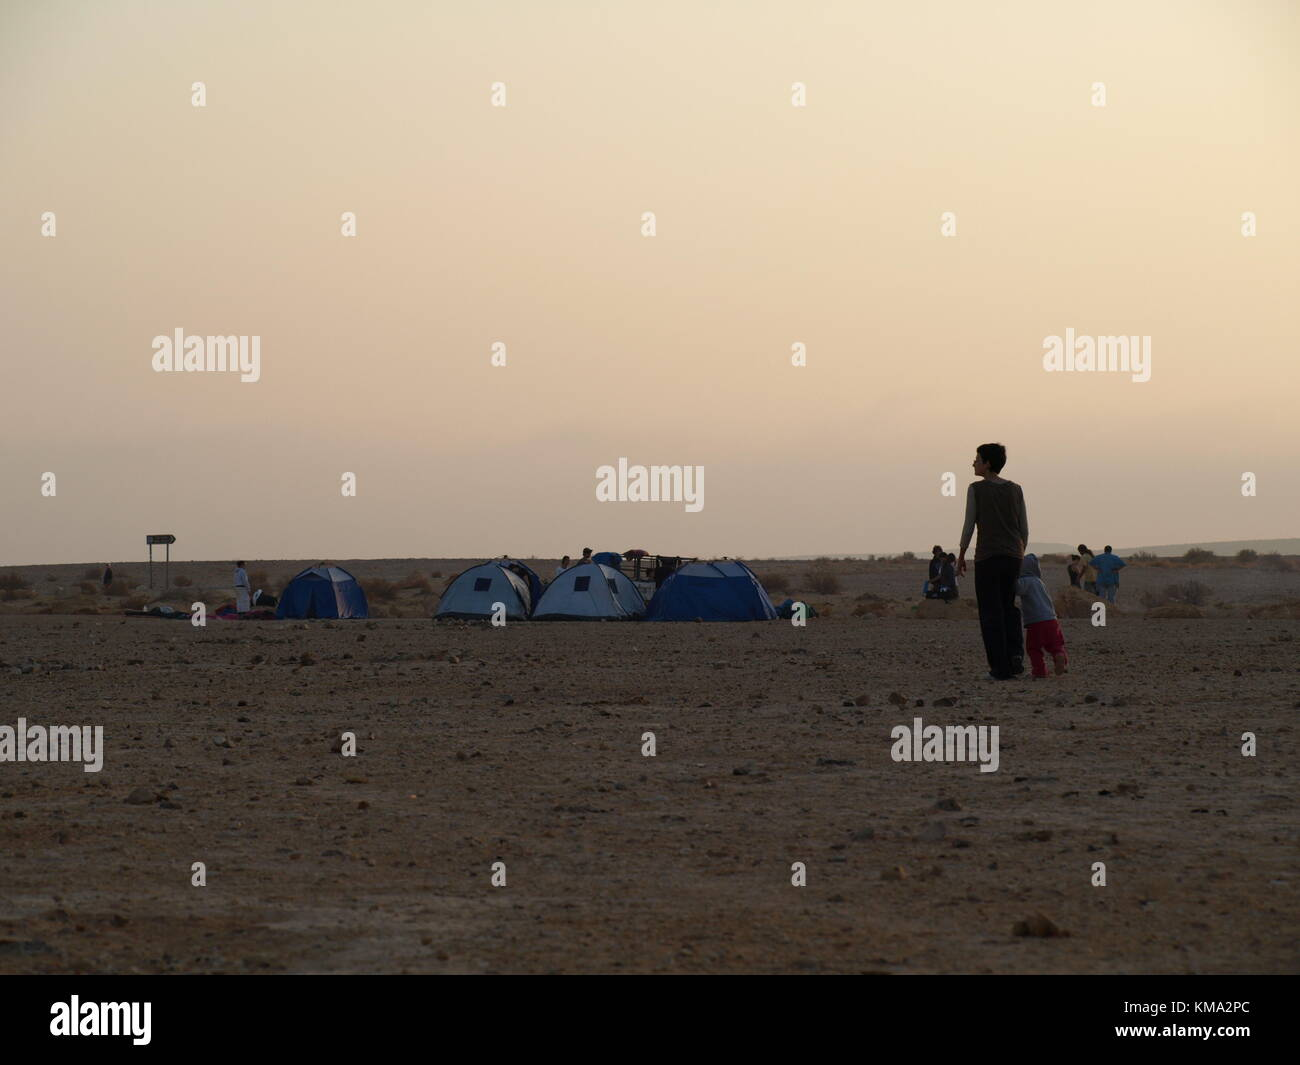 Search Results for Doom Tents Stock Photos and Images & Doom Tents Stock Photos u0026 Doom Tents Stock Images - Alamy